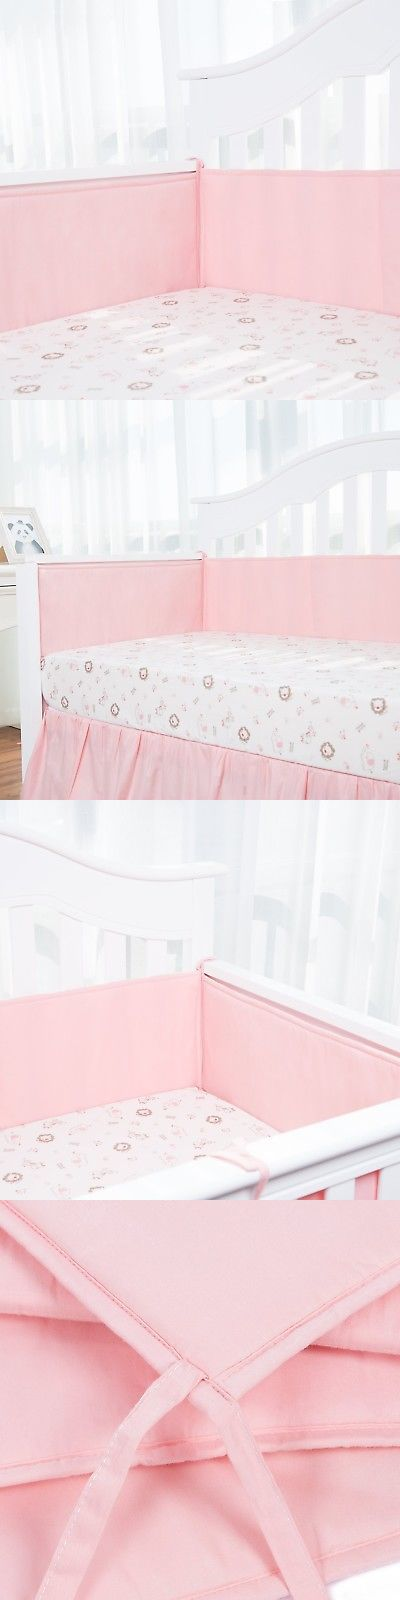 Bumpers 20417: Tillyou Padded Crib Bumper Set For Baby Girls, Premium Woven Cotton And B... New -> BUY IT NOW ONLY: $36.99 on eBay!